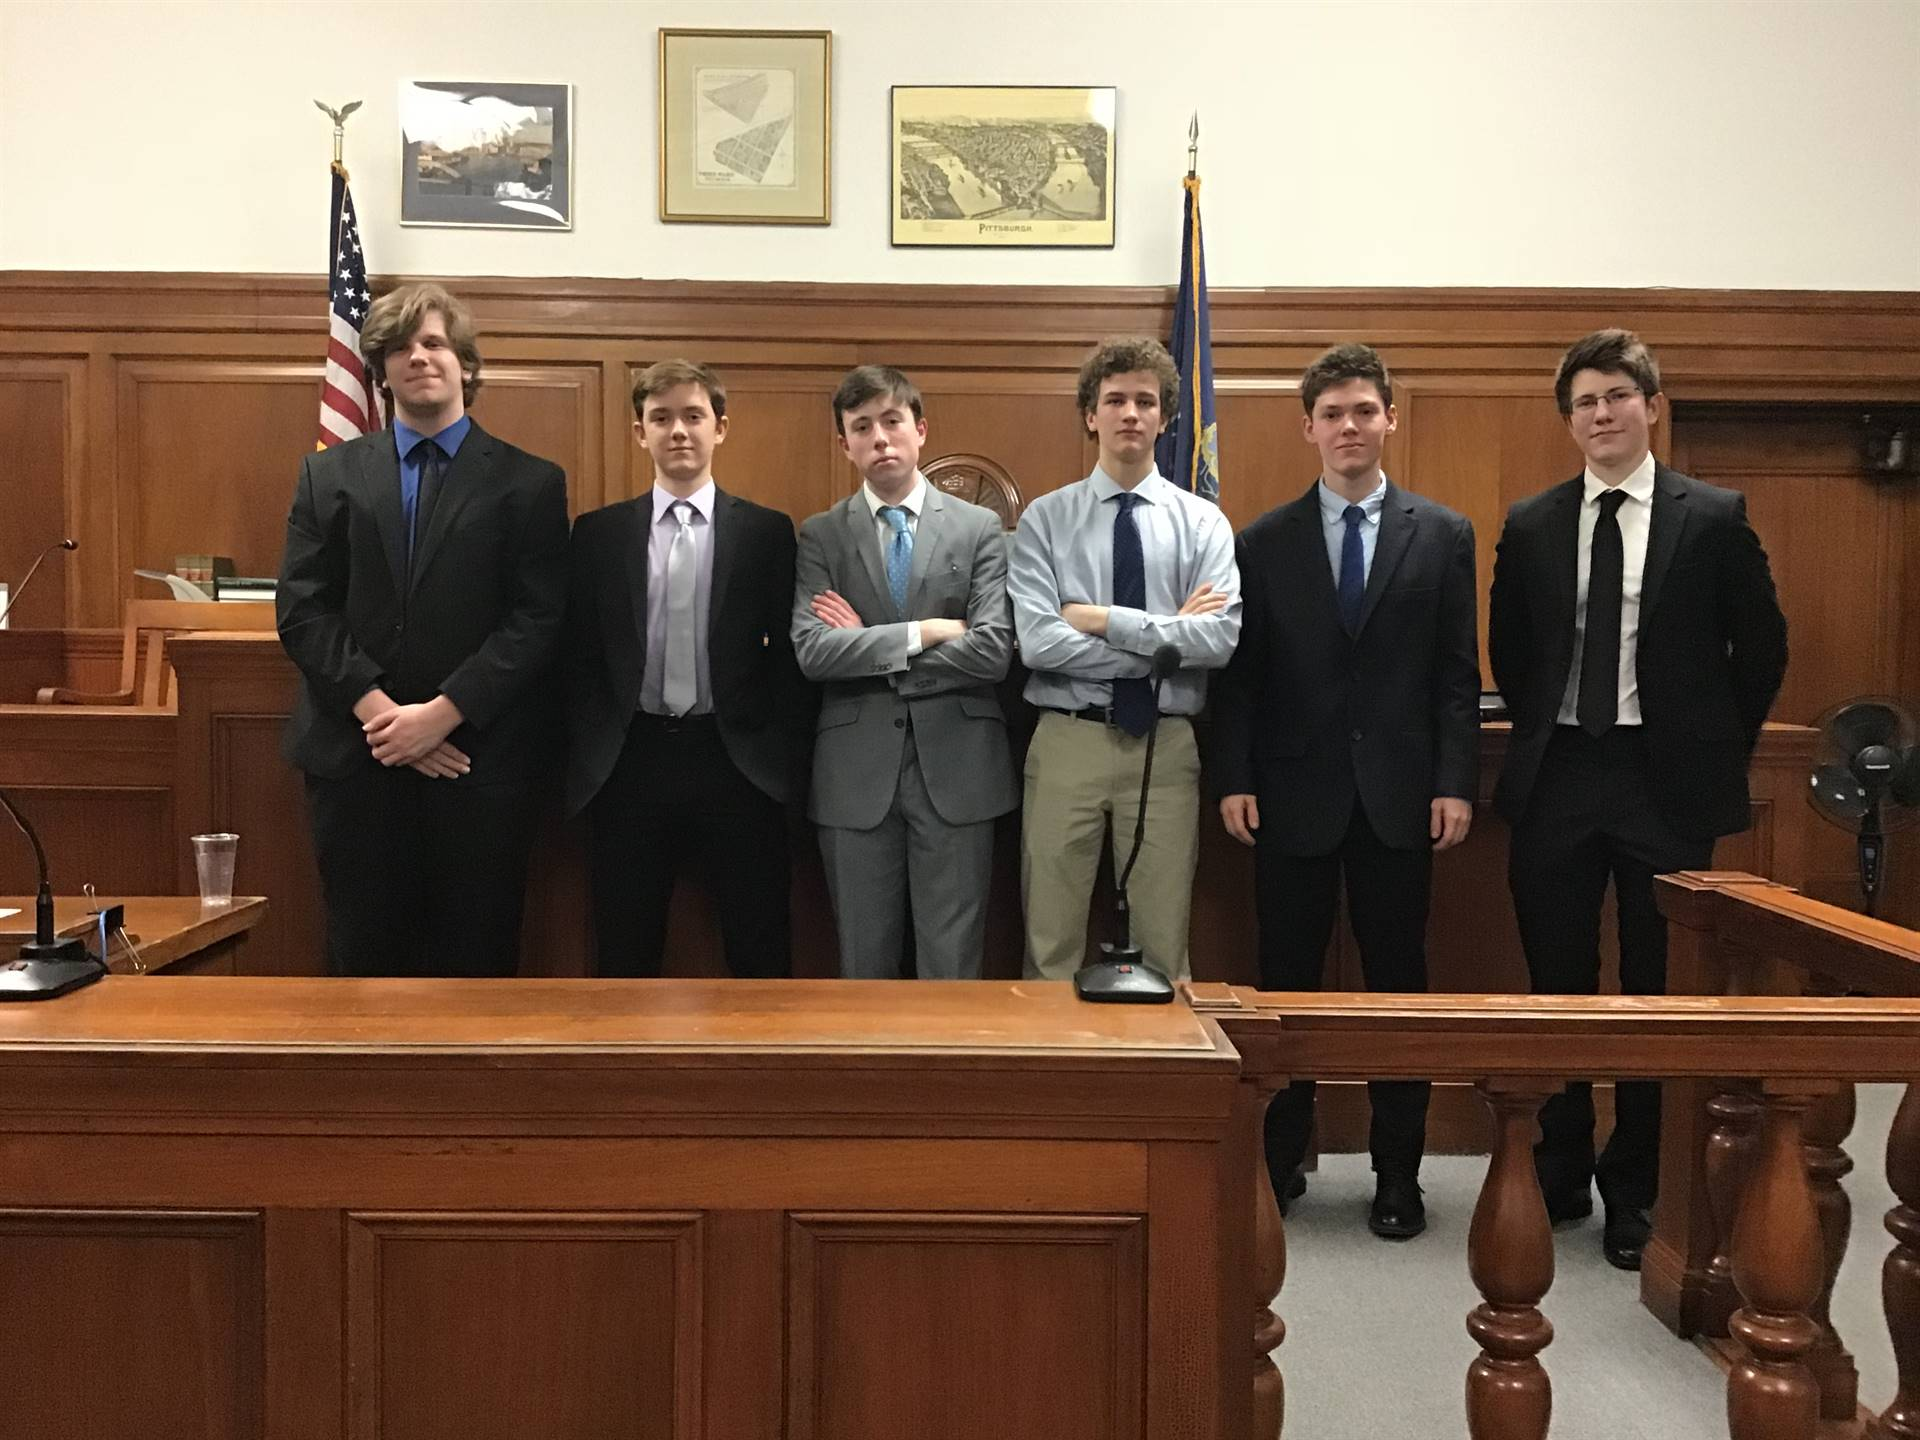 Statewide mock trial defense team